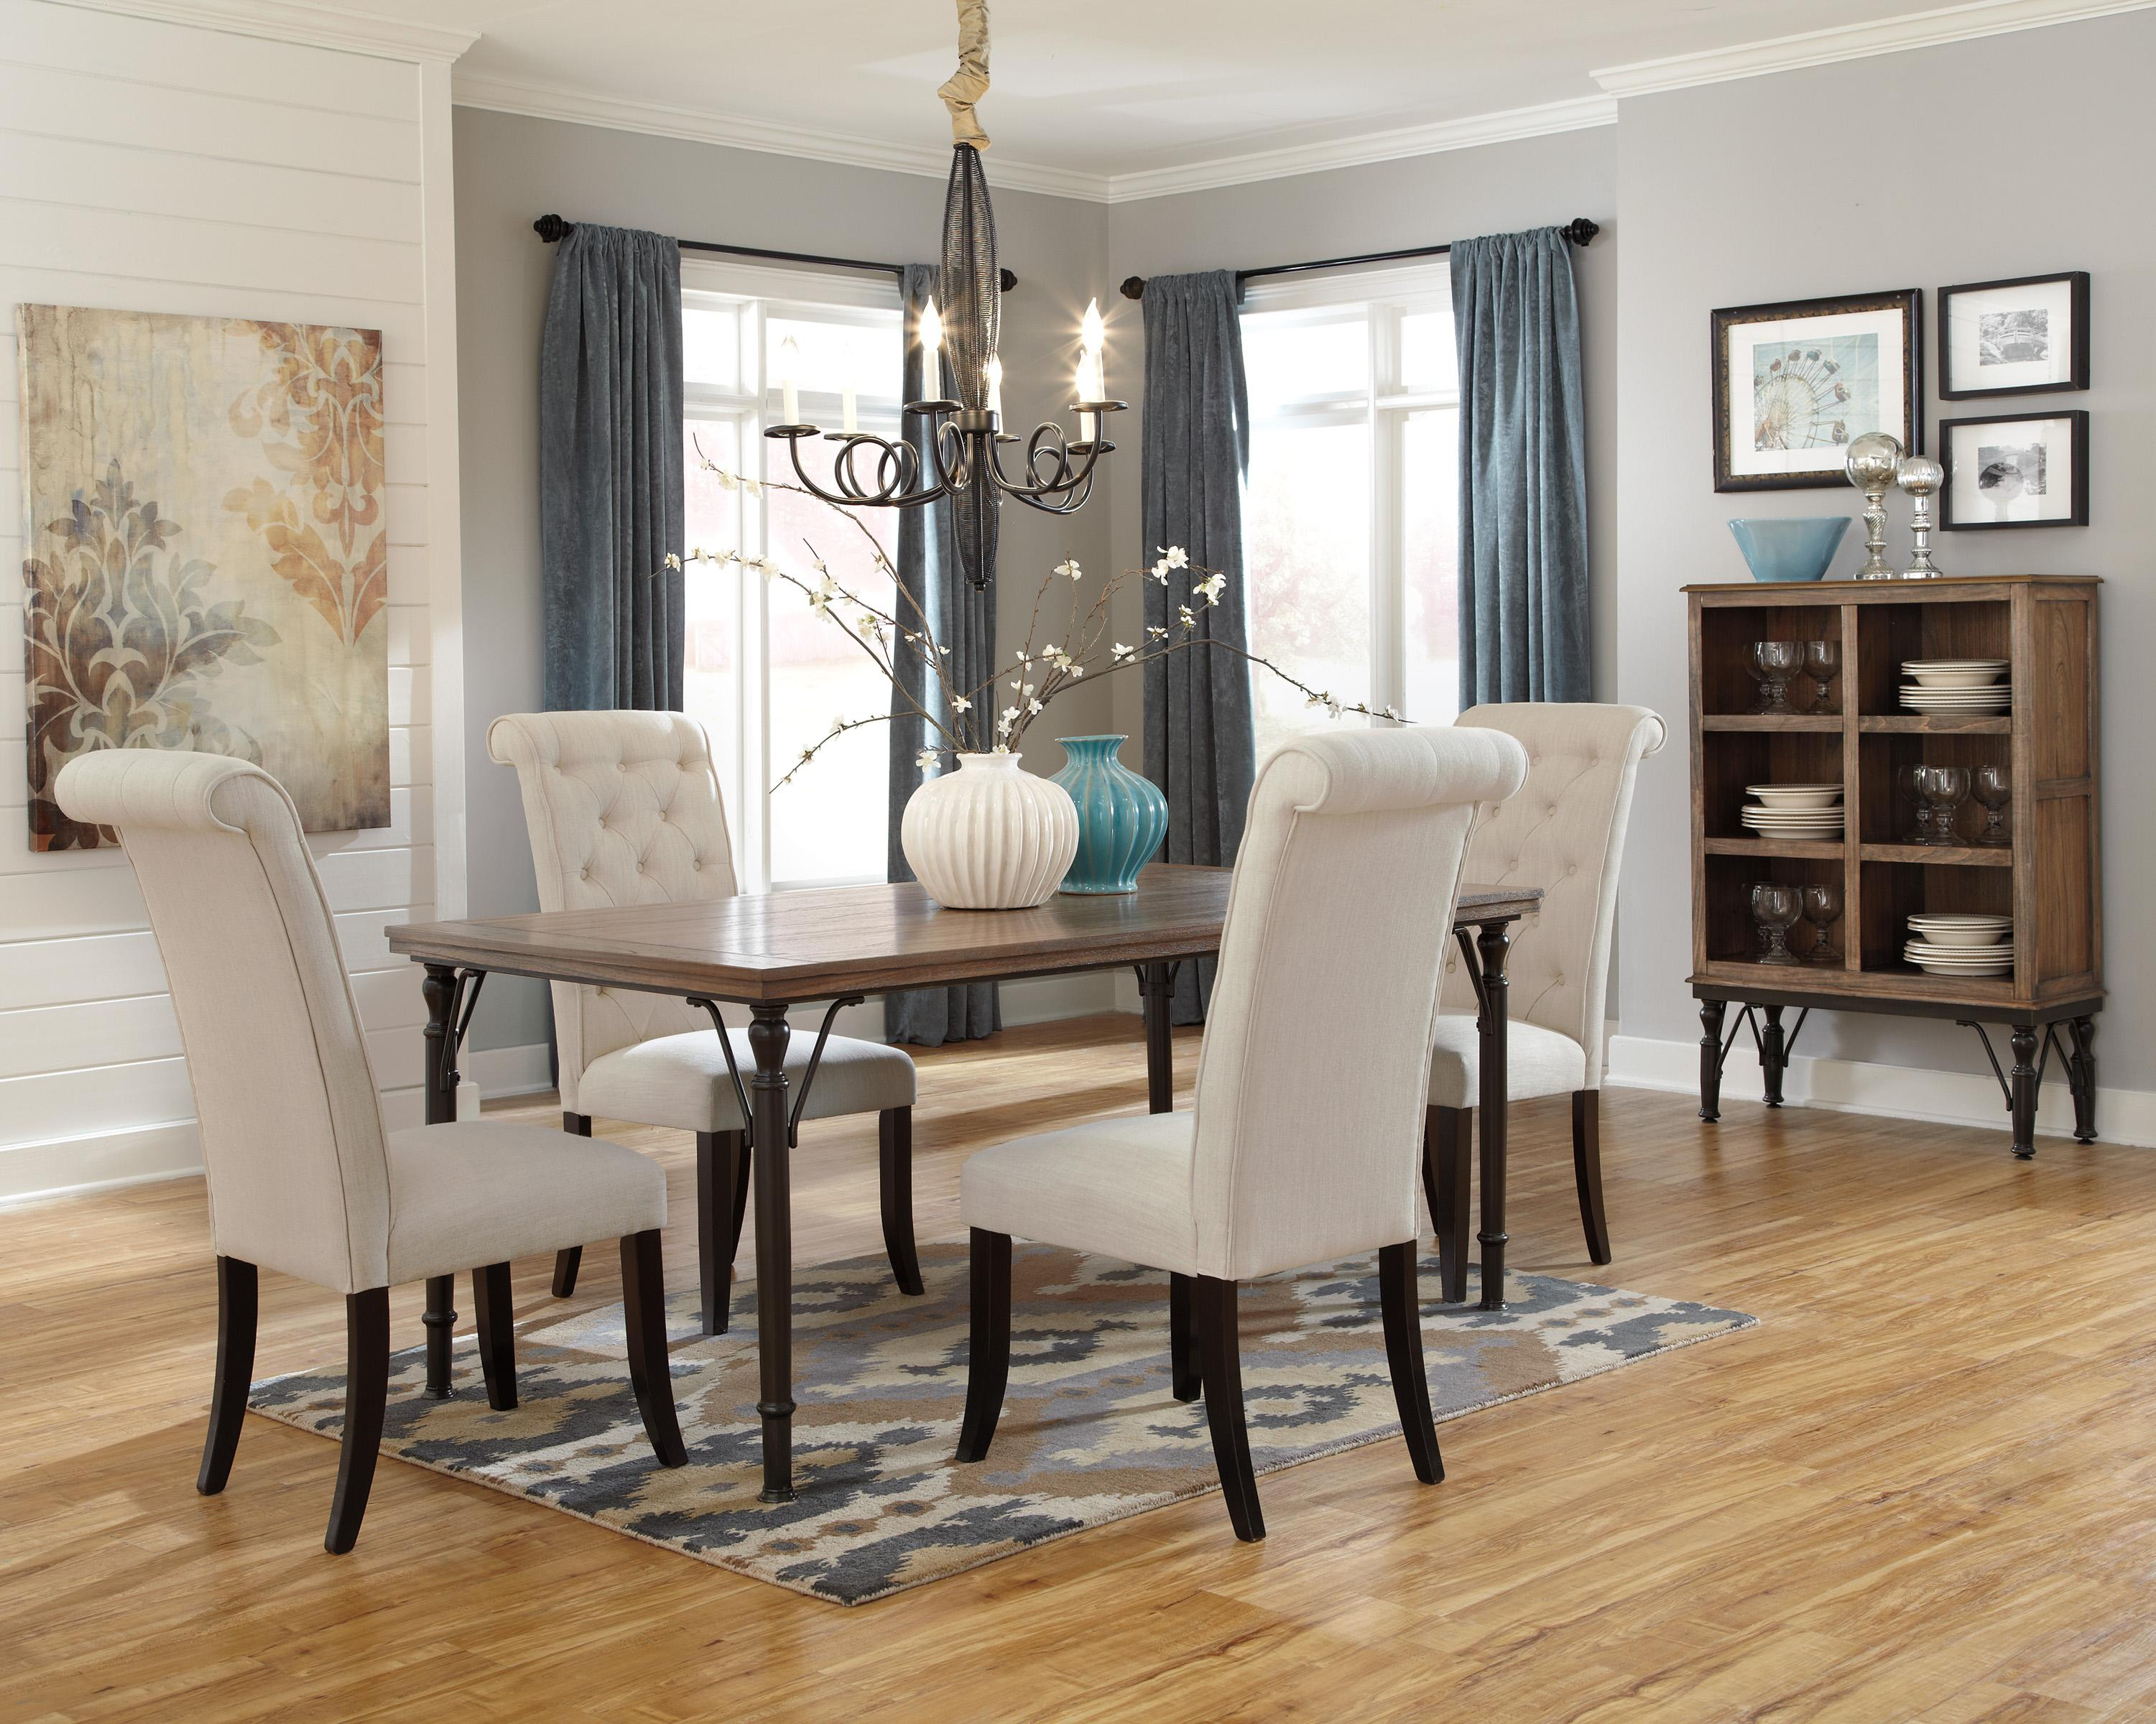 Signature Design by Ashley Tripton Casual Dining Room Group - Item Number: D530 Dining Room Group 1